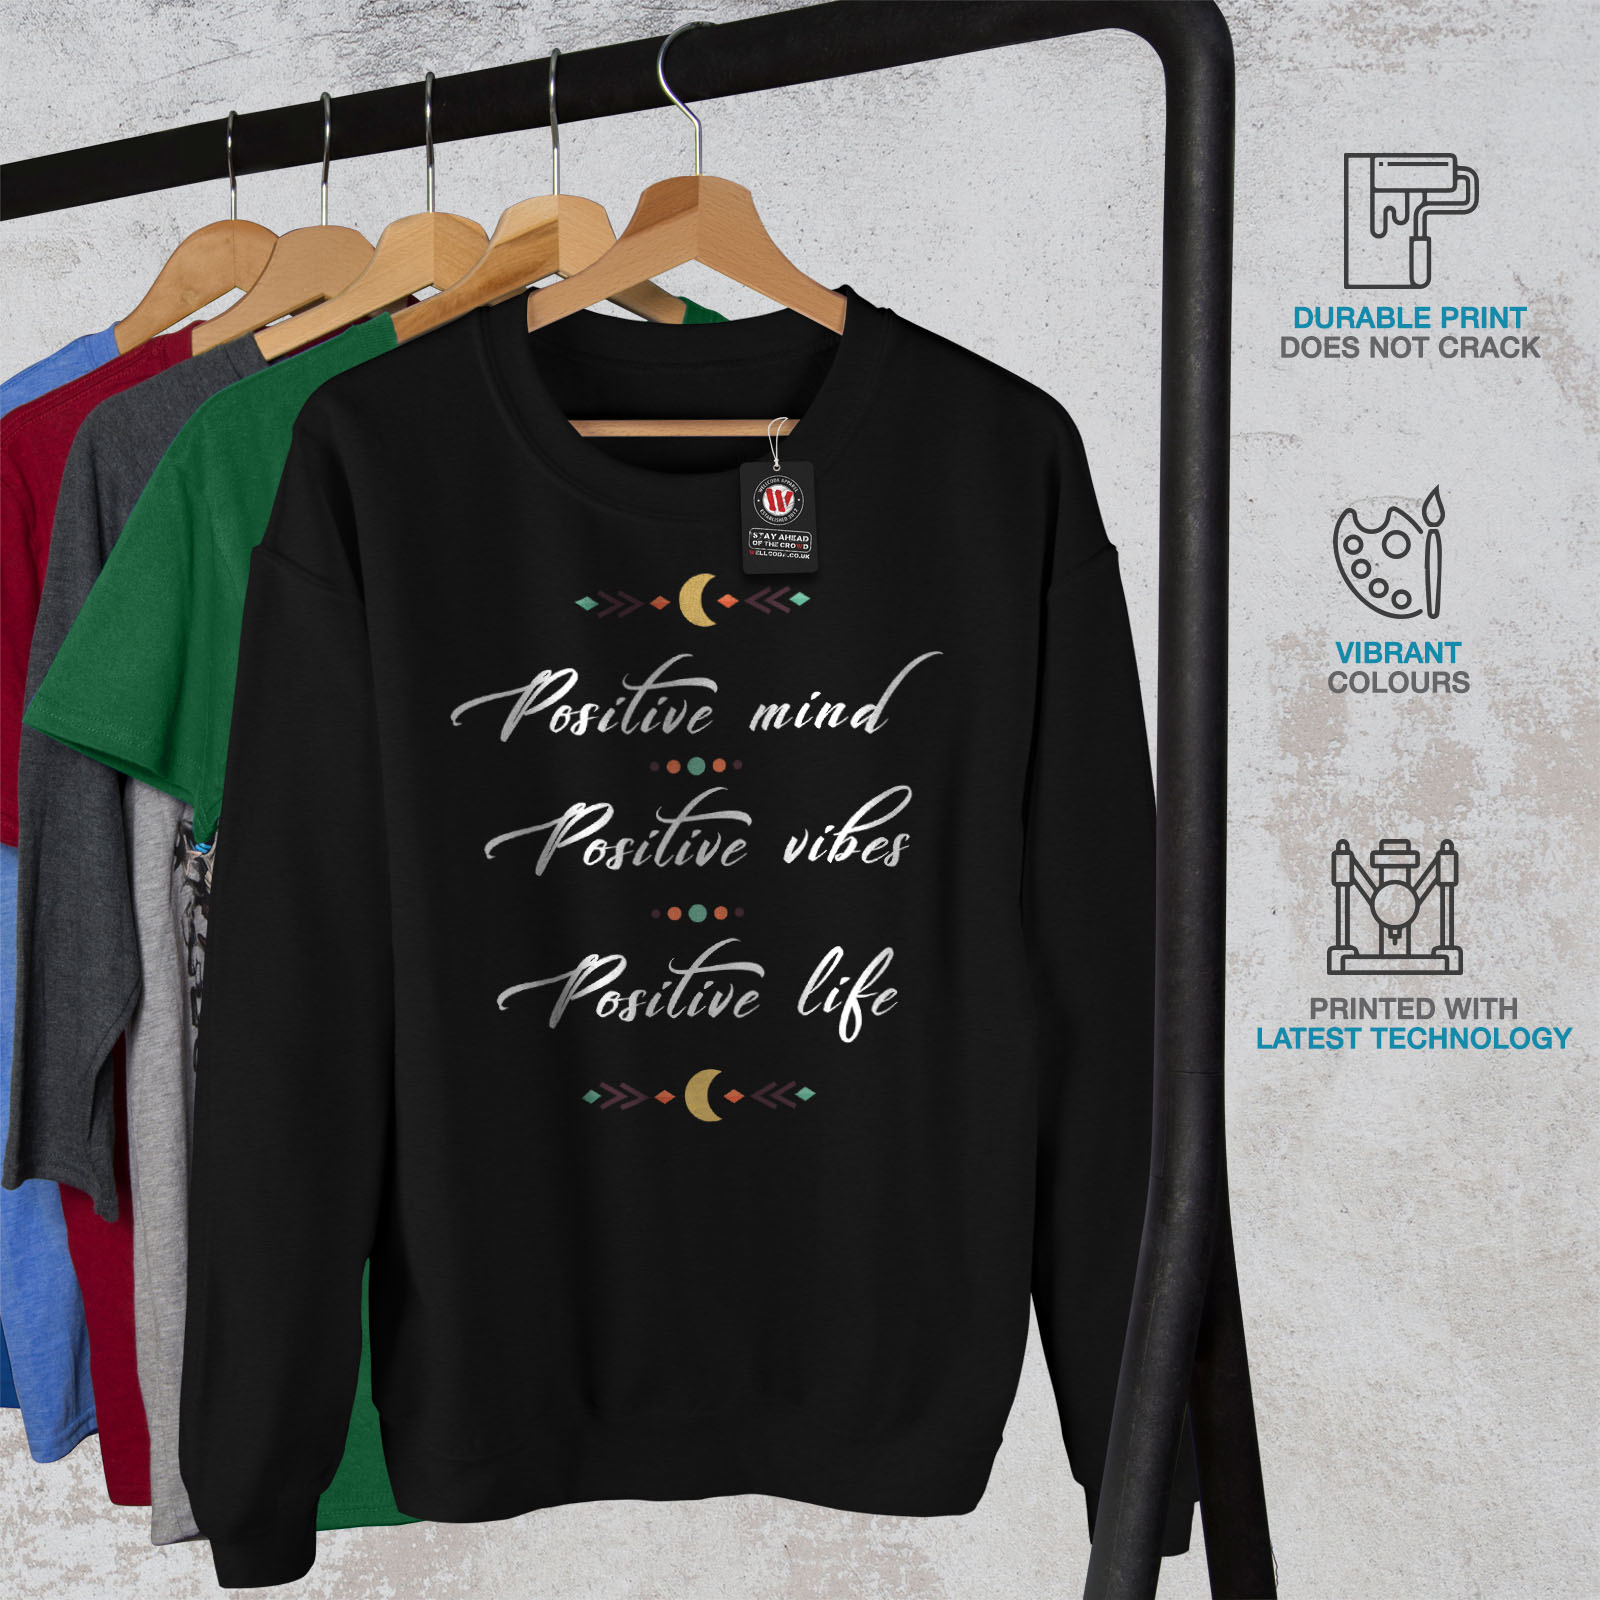 Casual Jumper Sweatshirt Vibes Mens Life Mind Wellcoda Pullover Black Positive 8aCHY